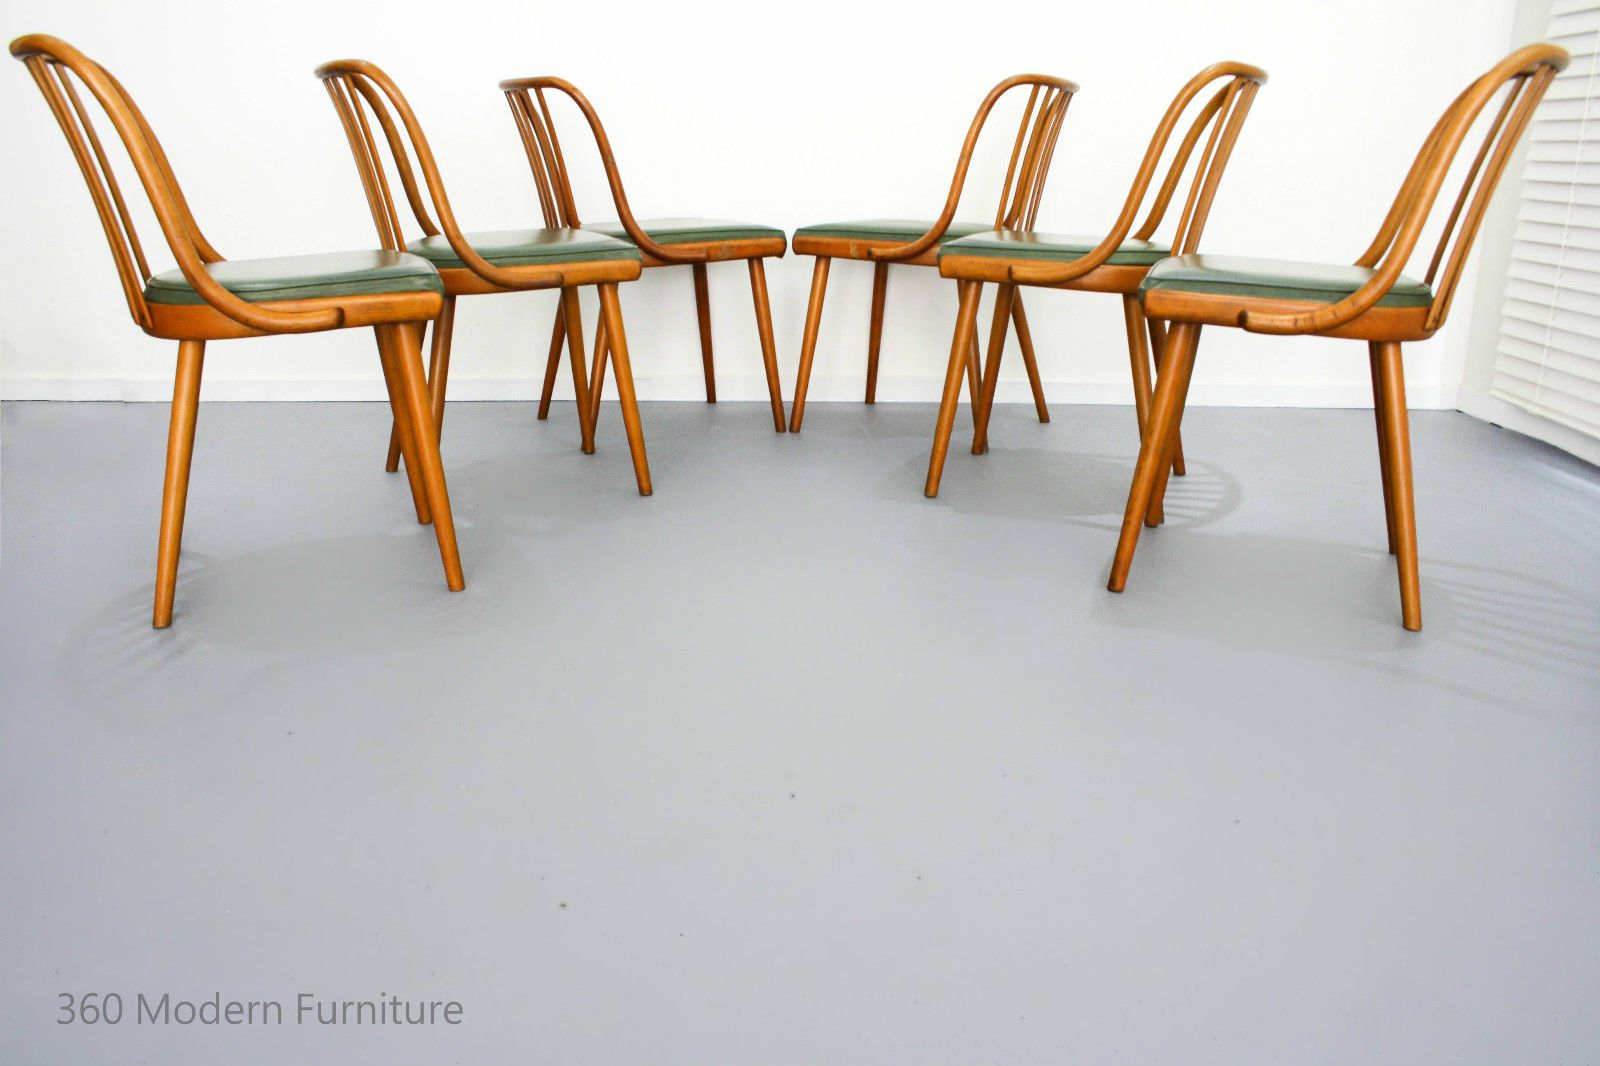 Original Bentwood Dining Chairs X 6 Ligna Vintage Retro Mid Century Thonet Czech In Home Garden Furniture Room